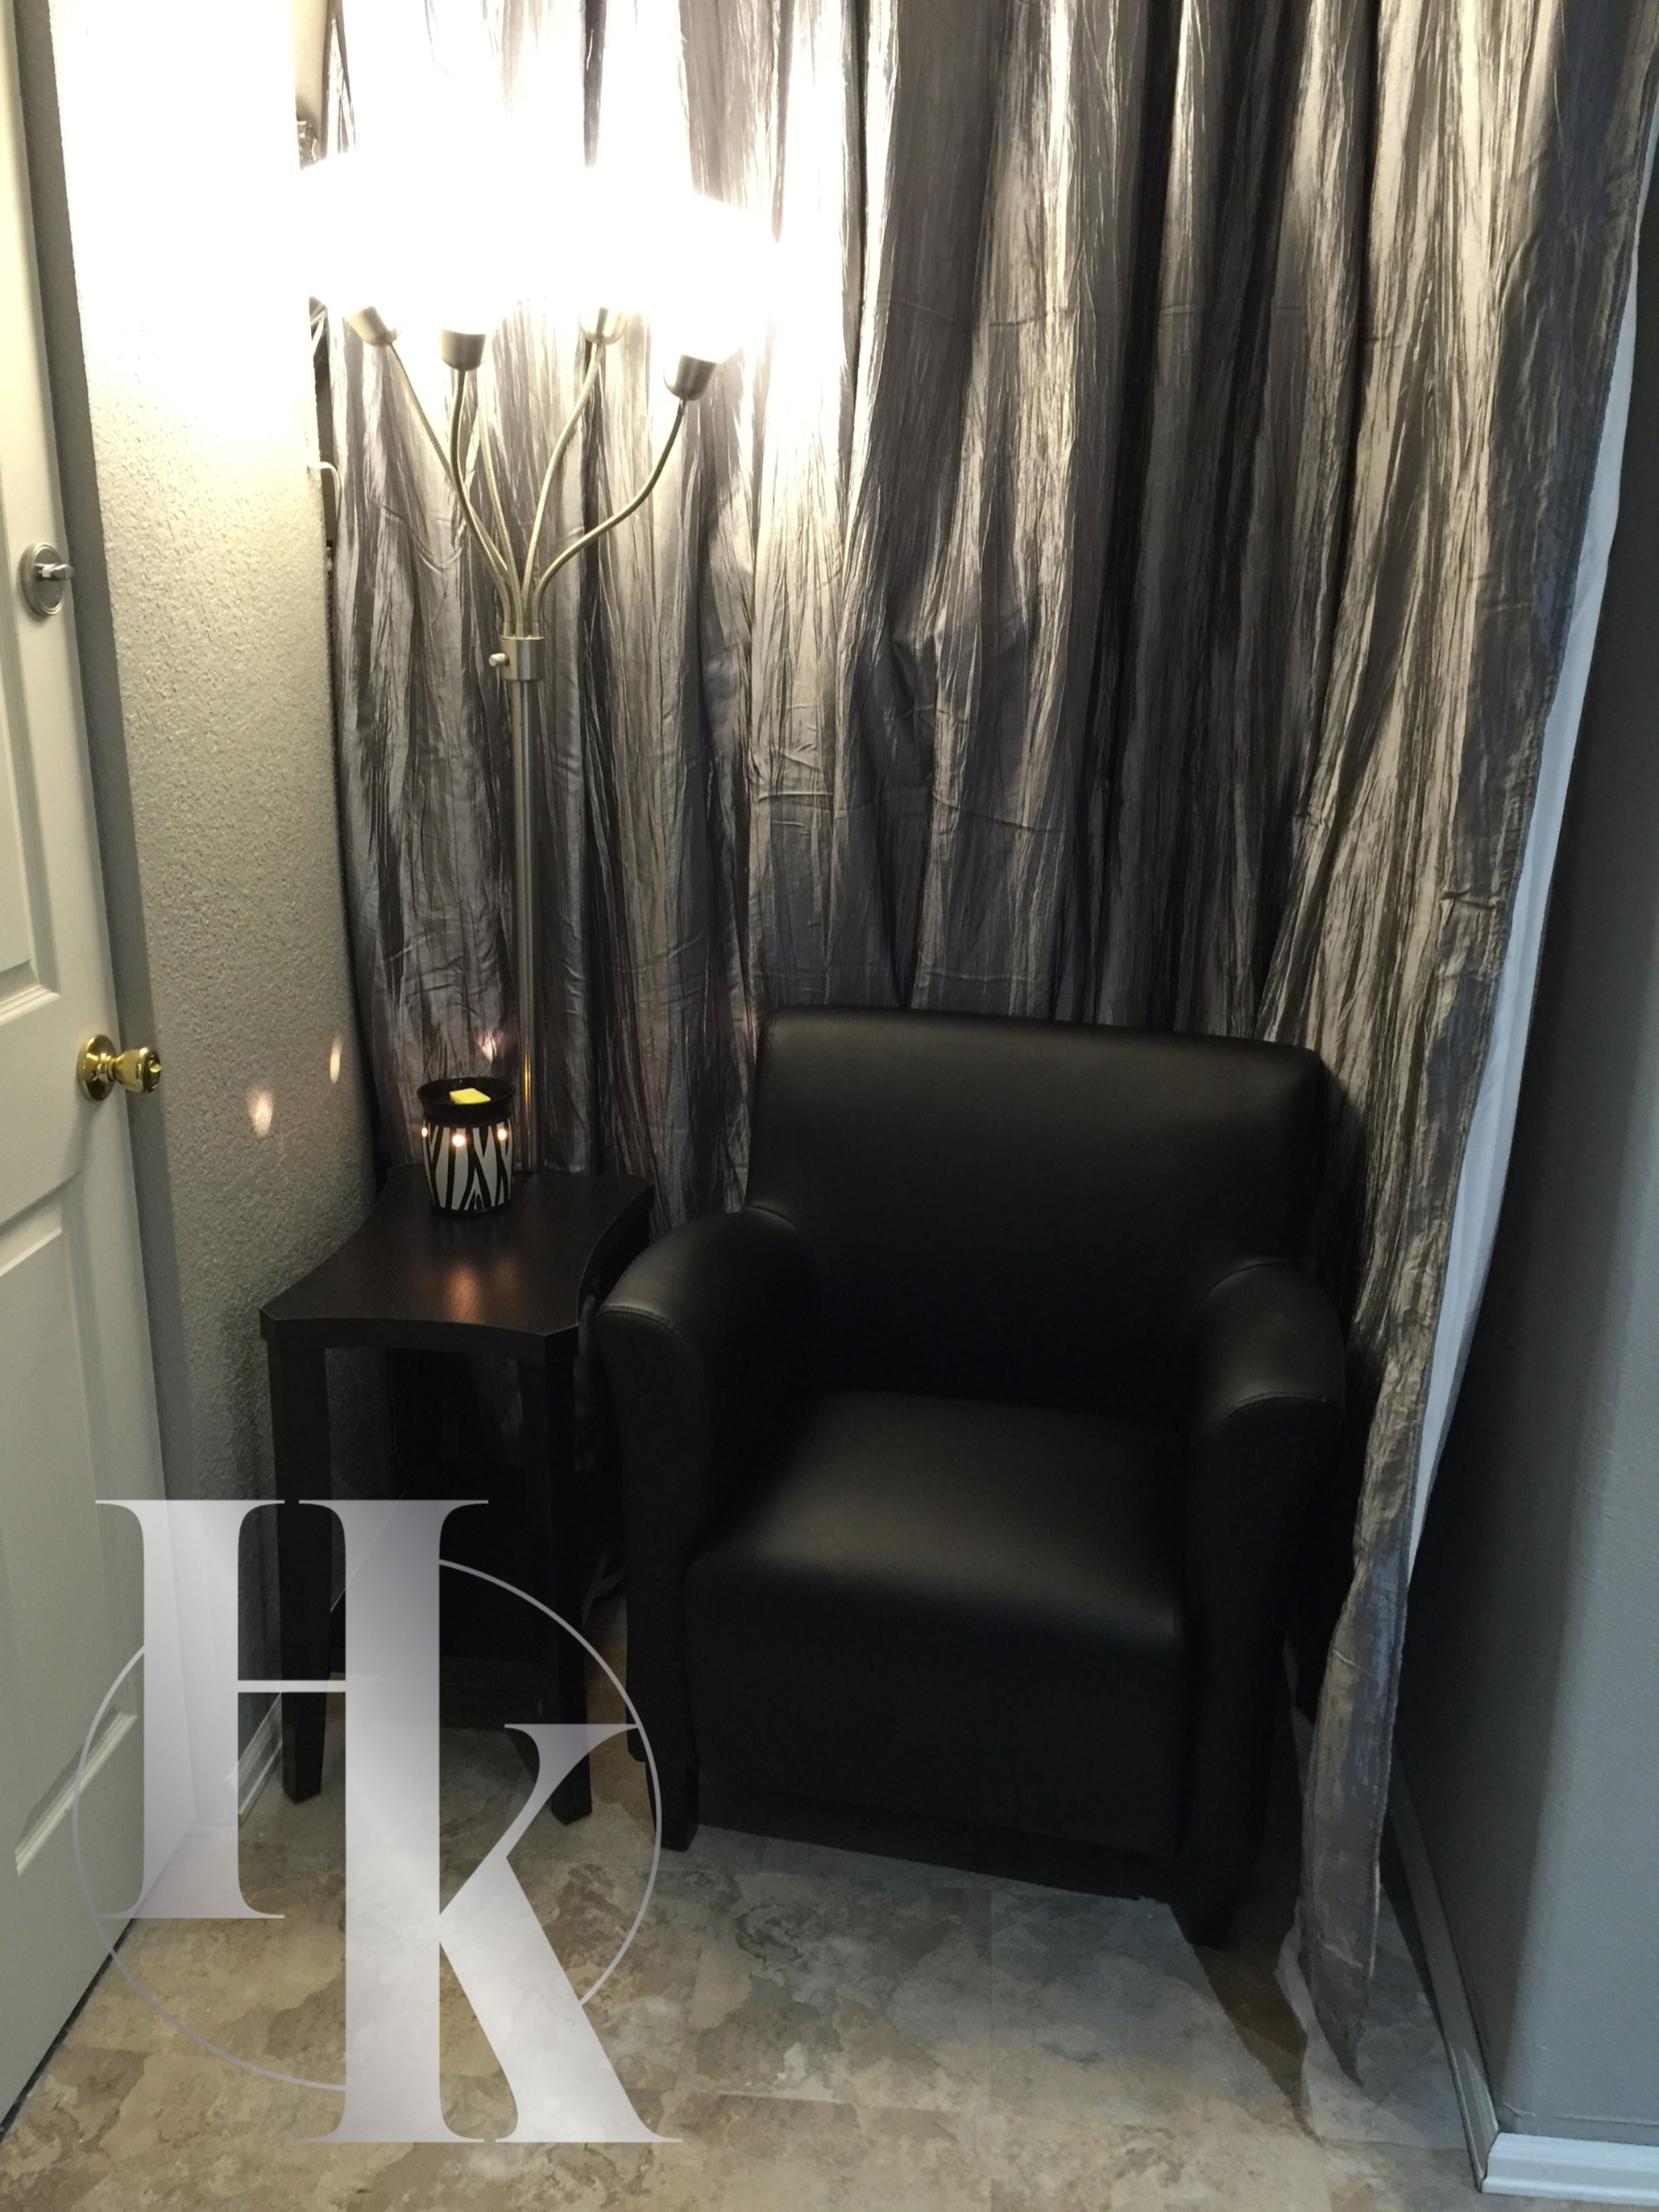 HK Wax Center Chair